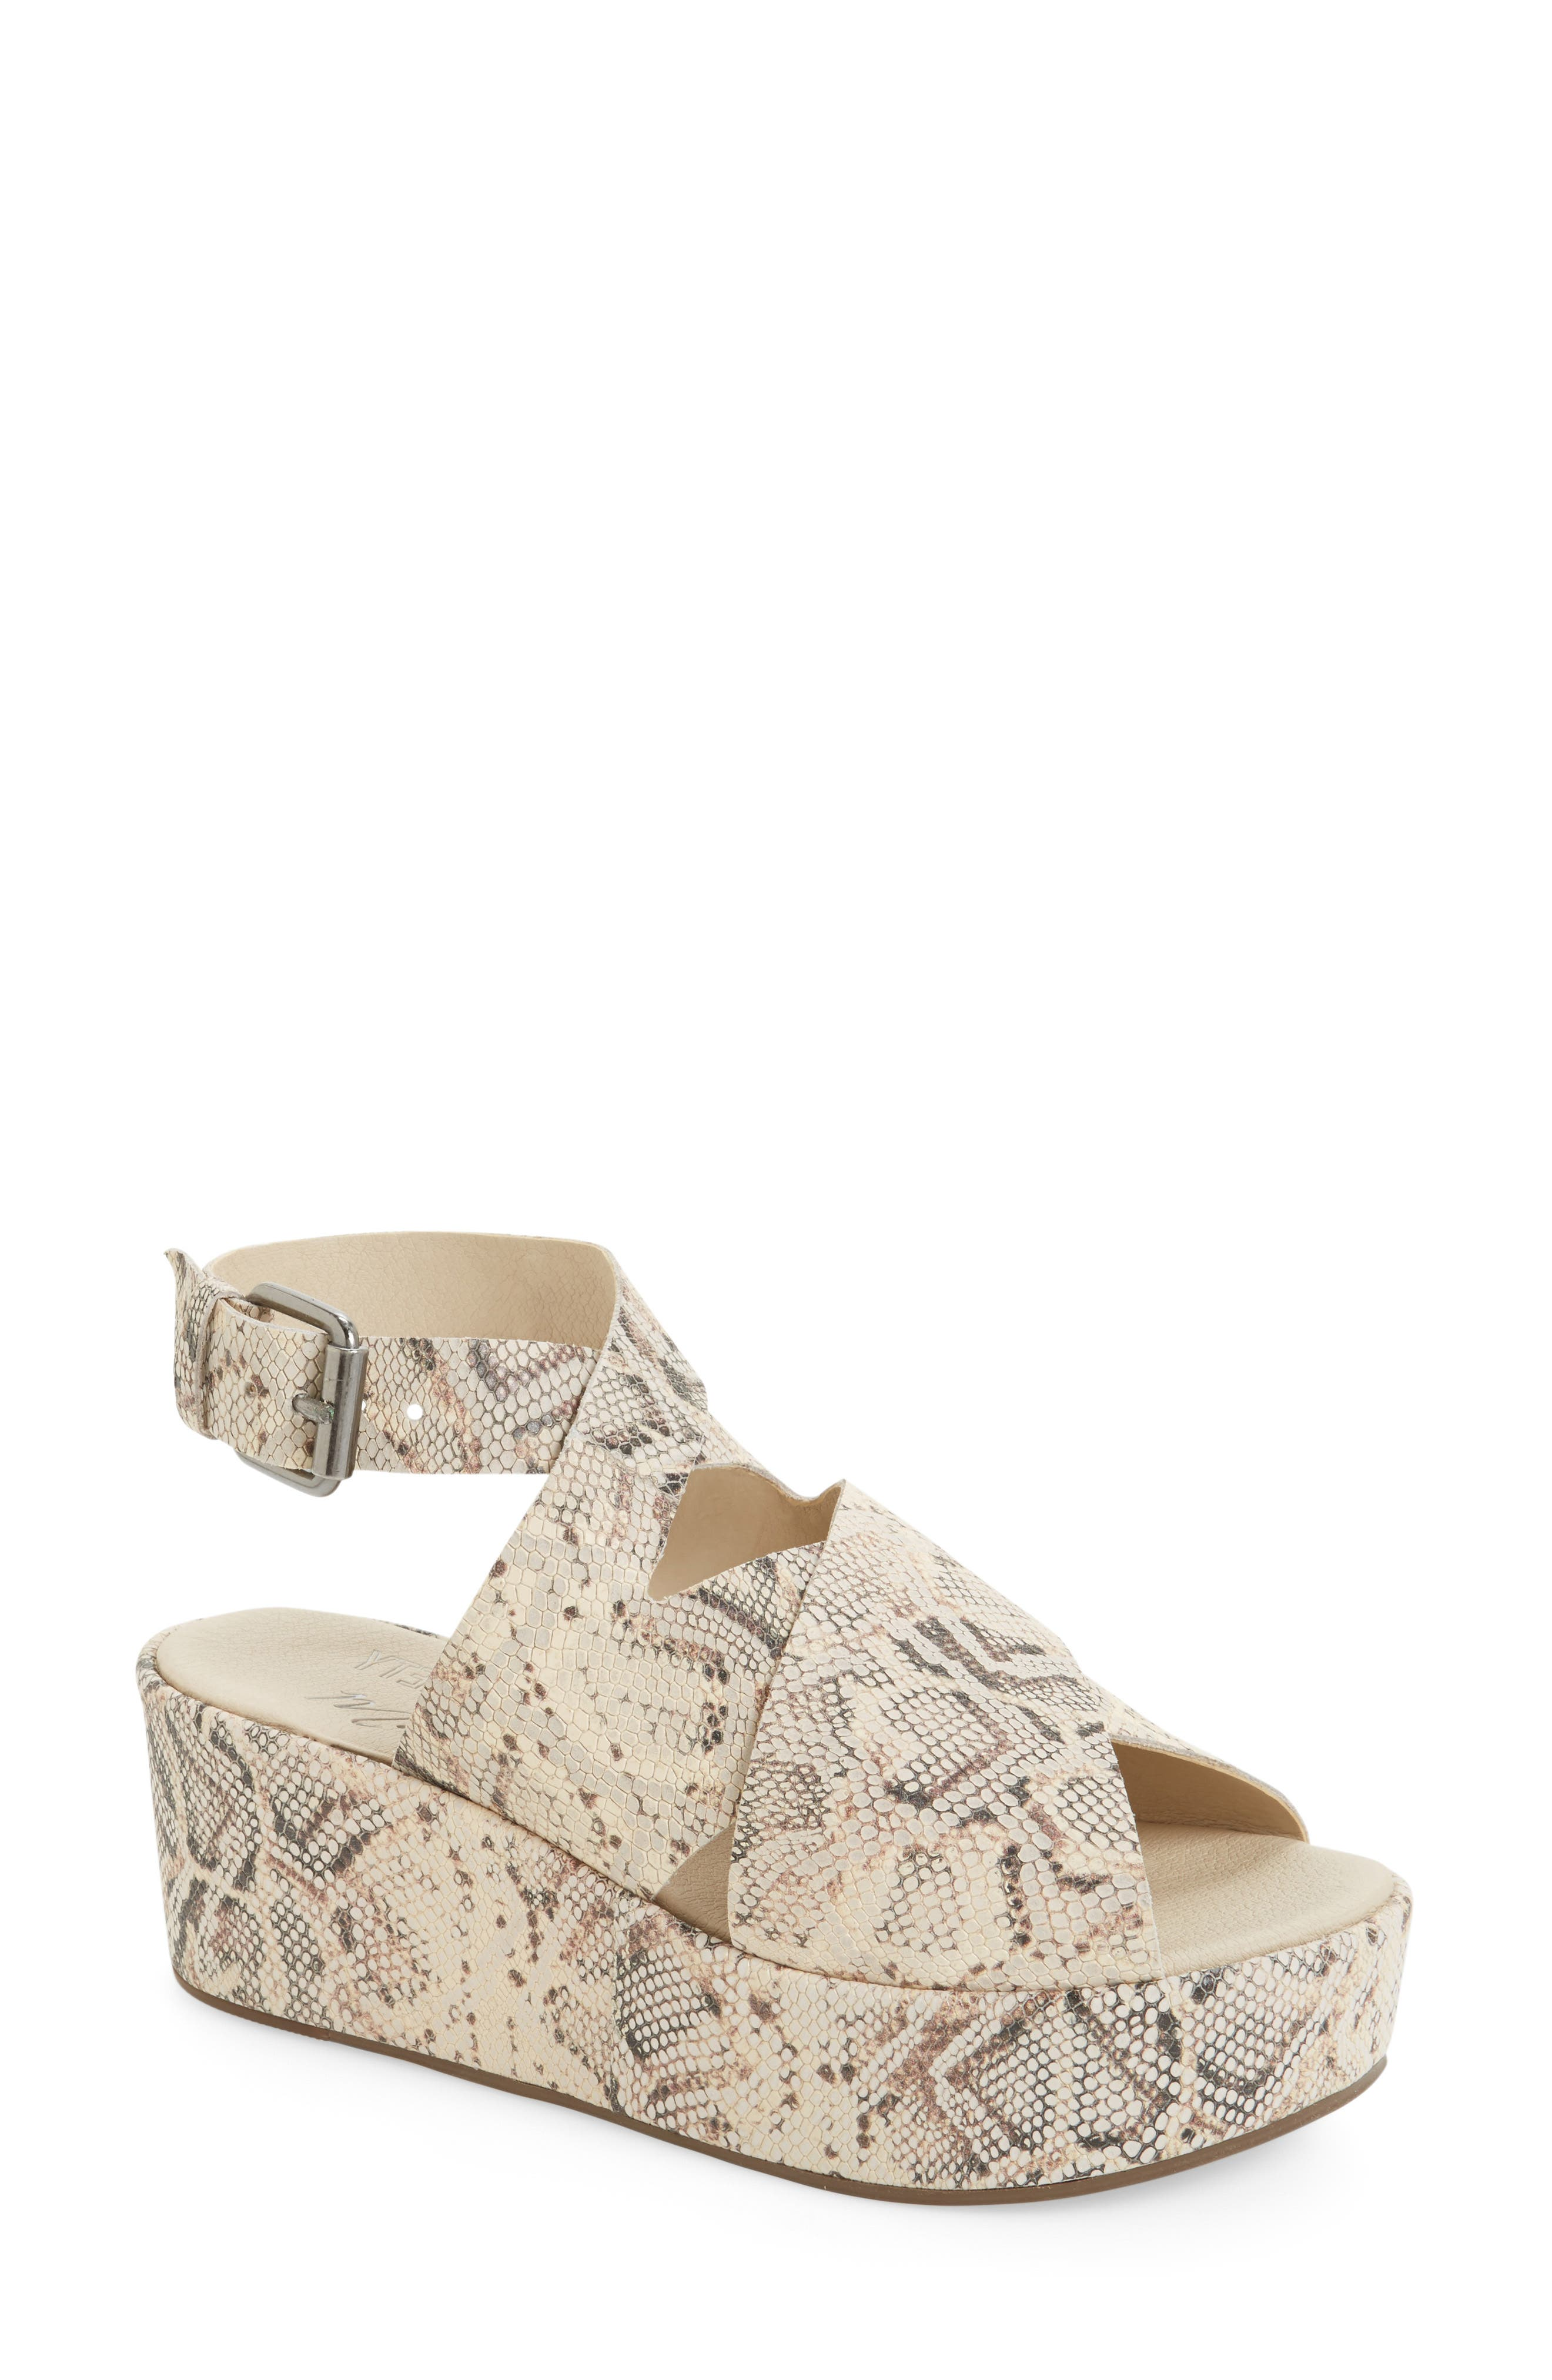 Runway Wedge Sandal,                         Main,                         color, Natural Snake Print Leather